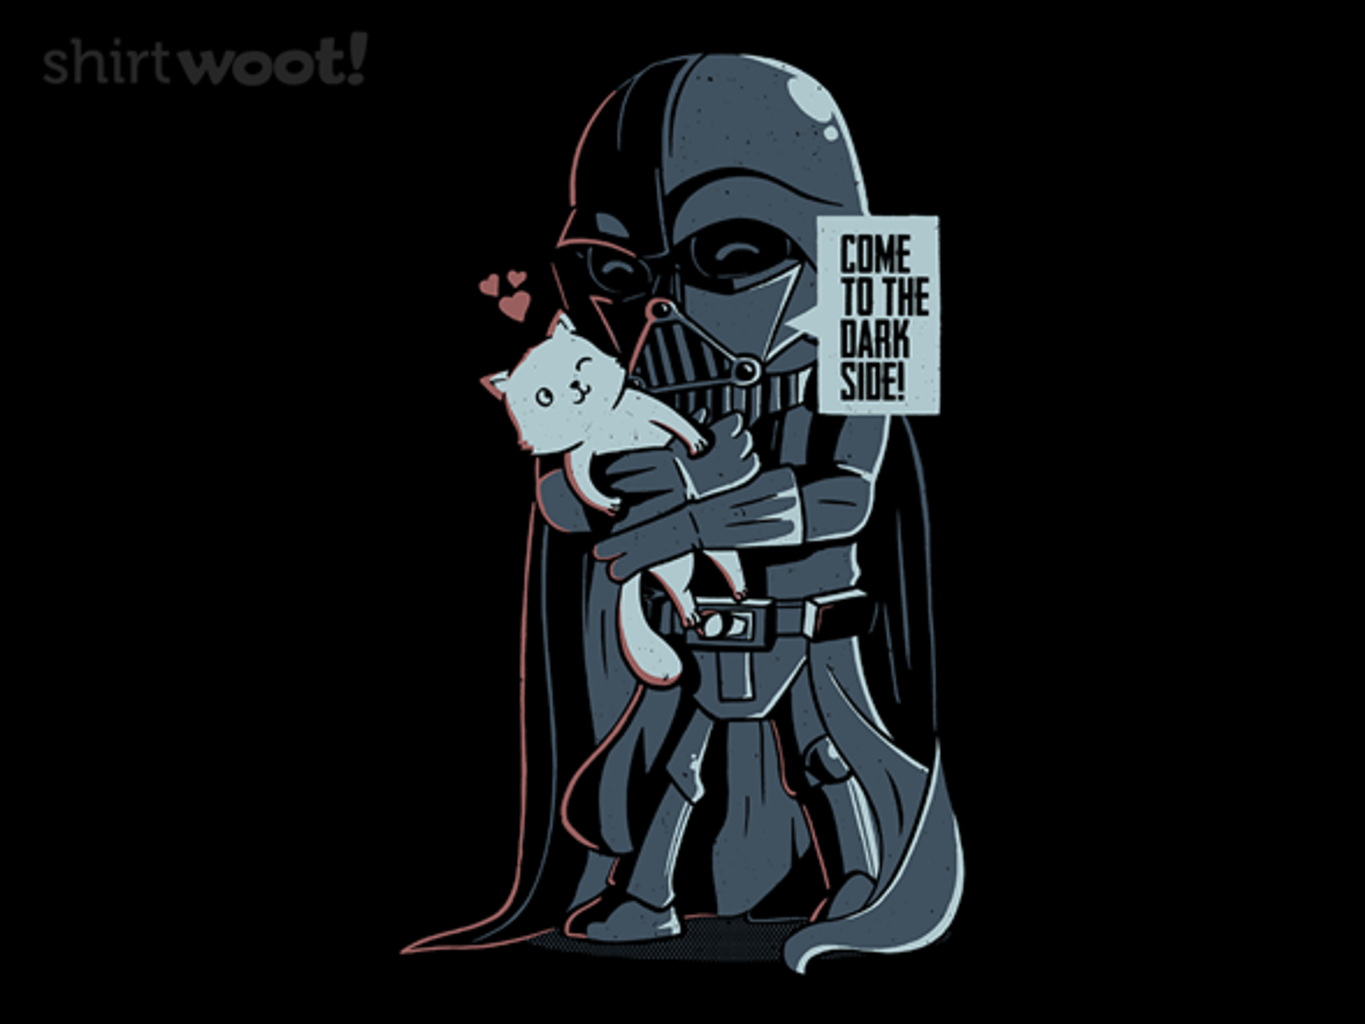 Woot!: Come to the Dark Side